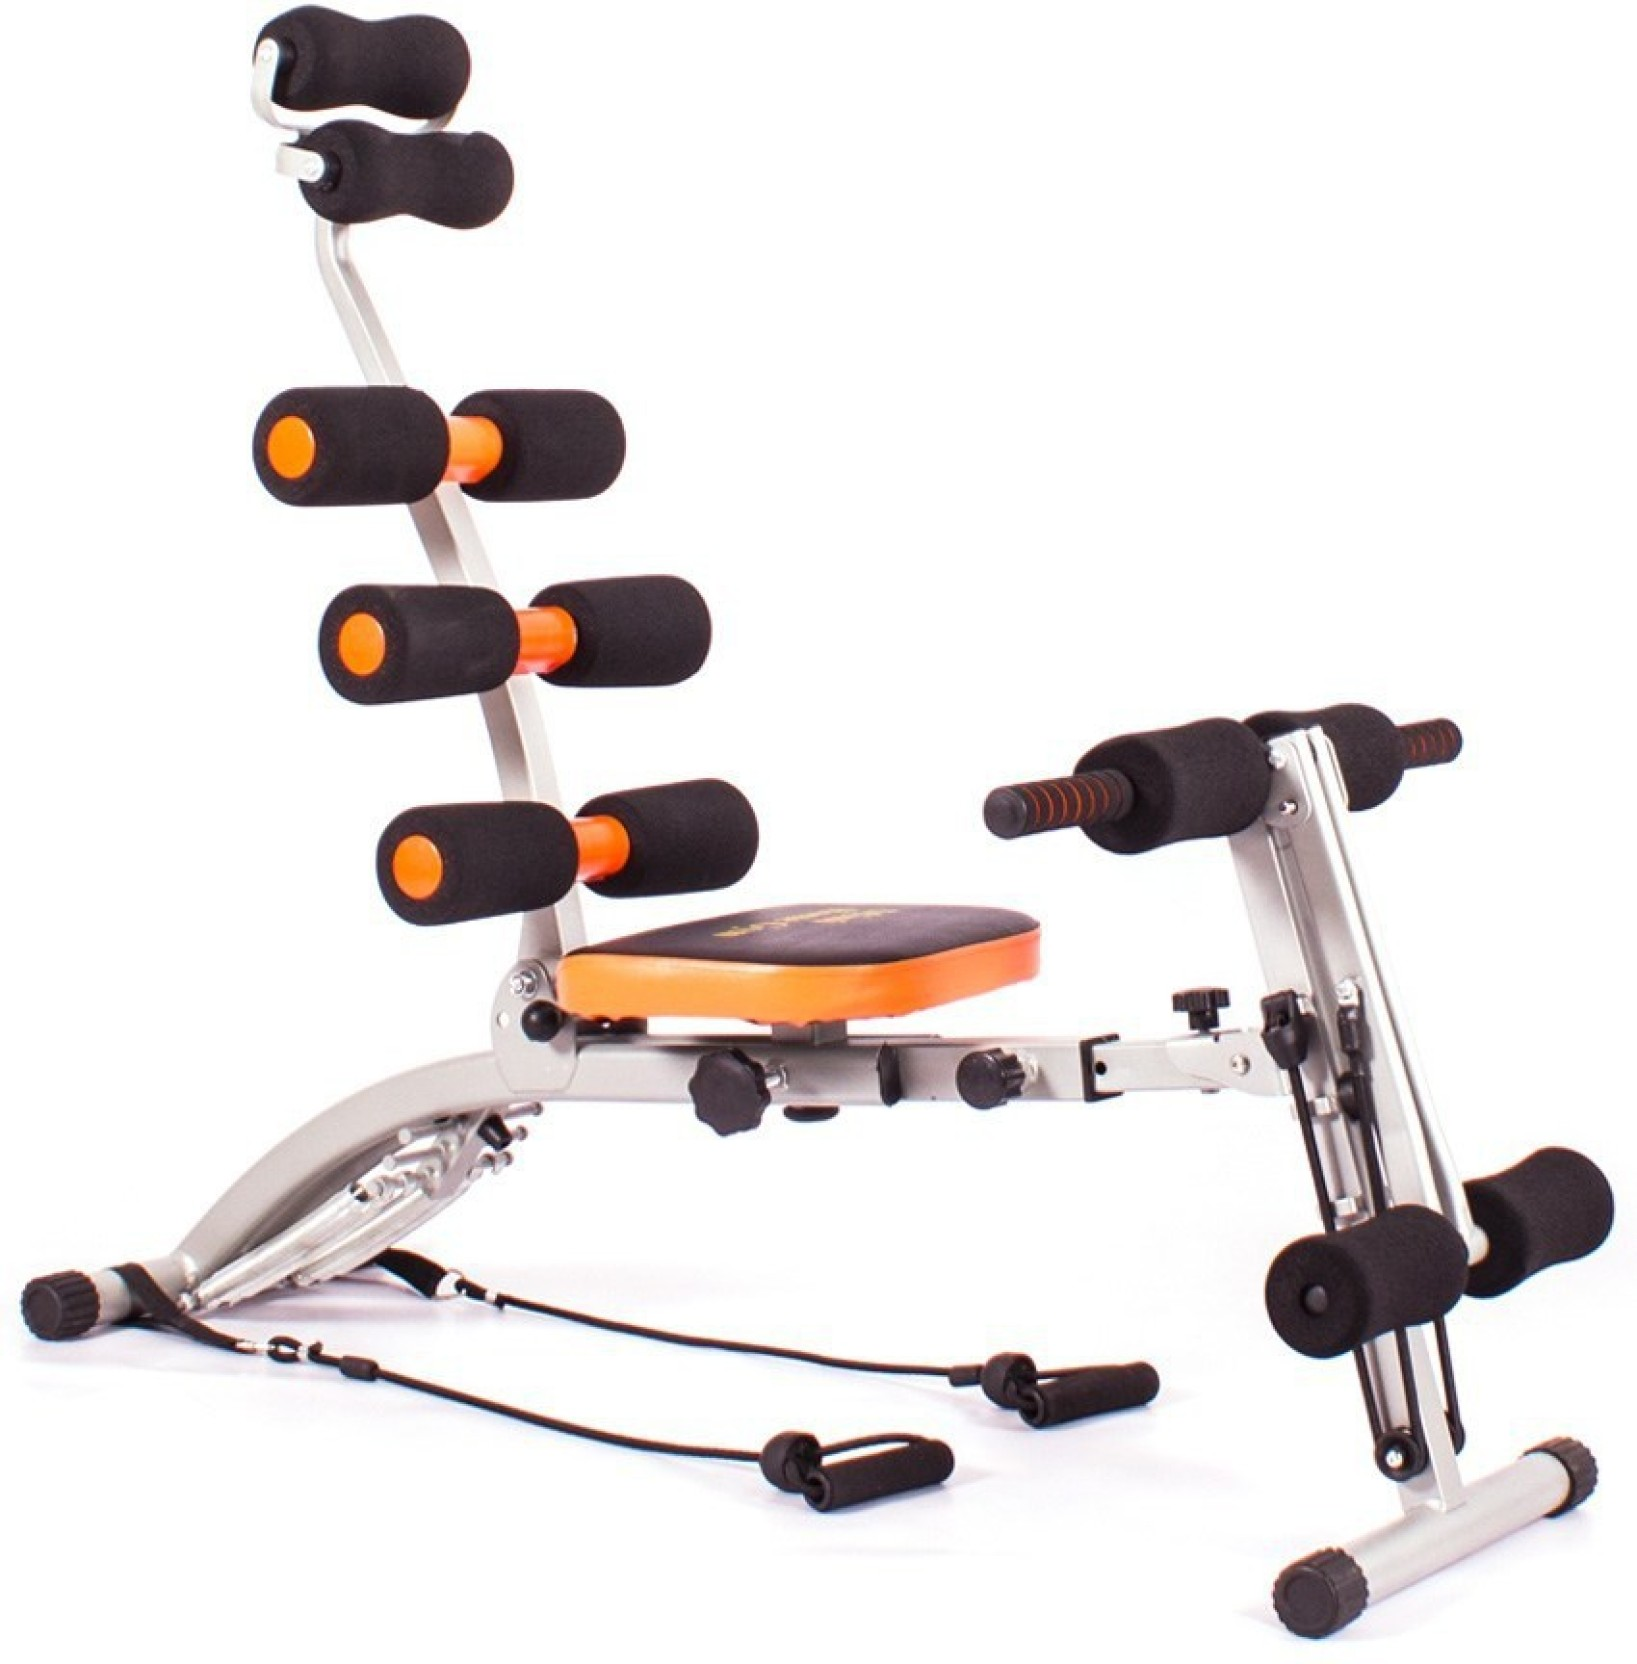 Home Exercise Equipment Price: Evana Six Packs Ab Builder Full Body Abdominal Back Leg